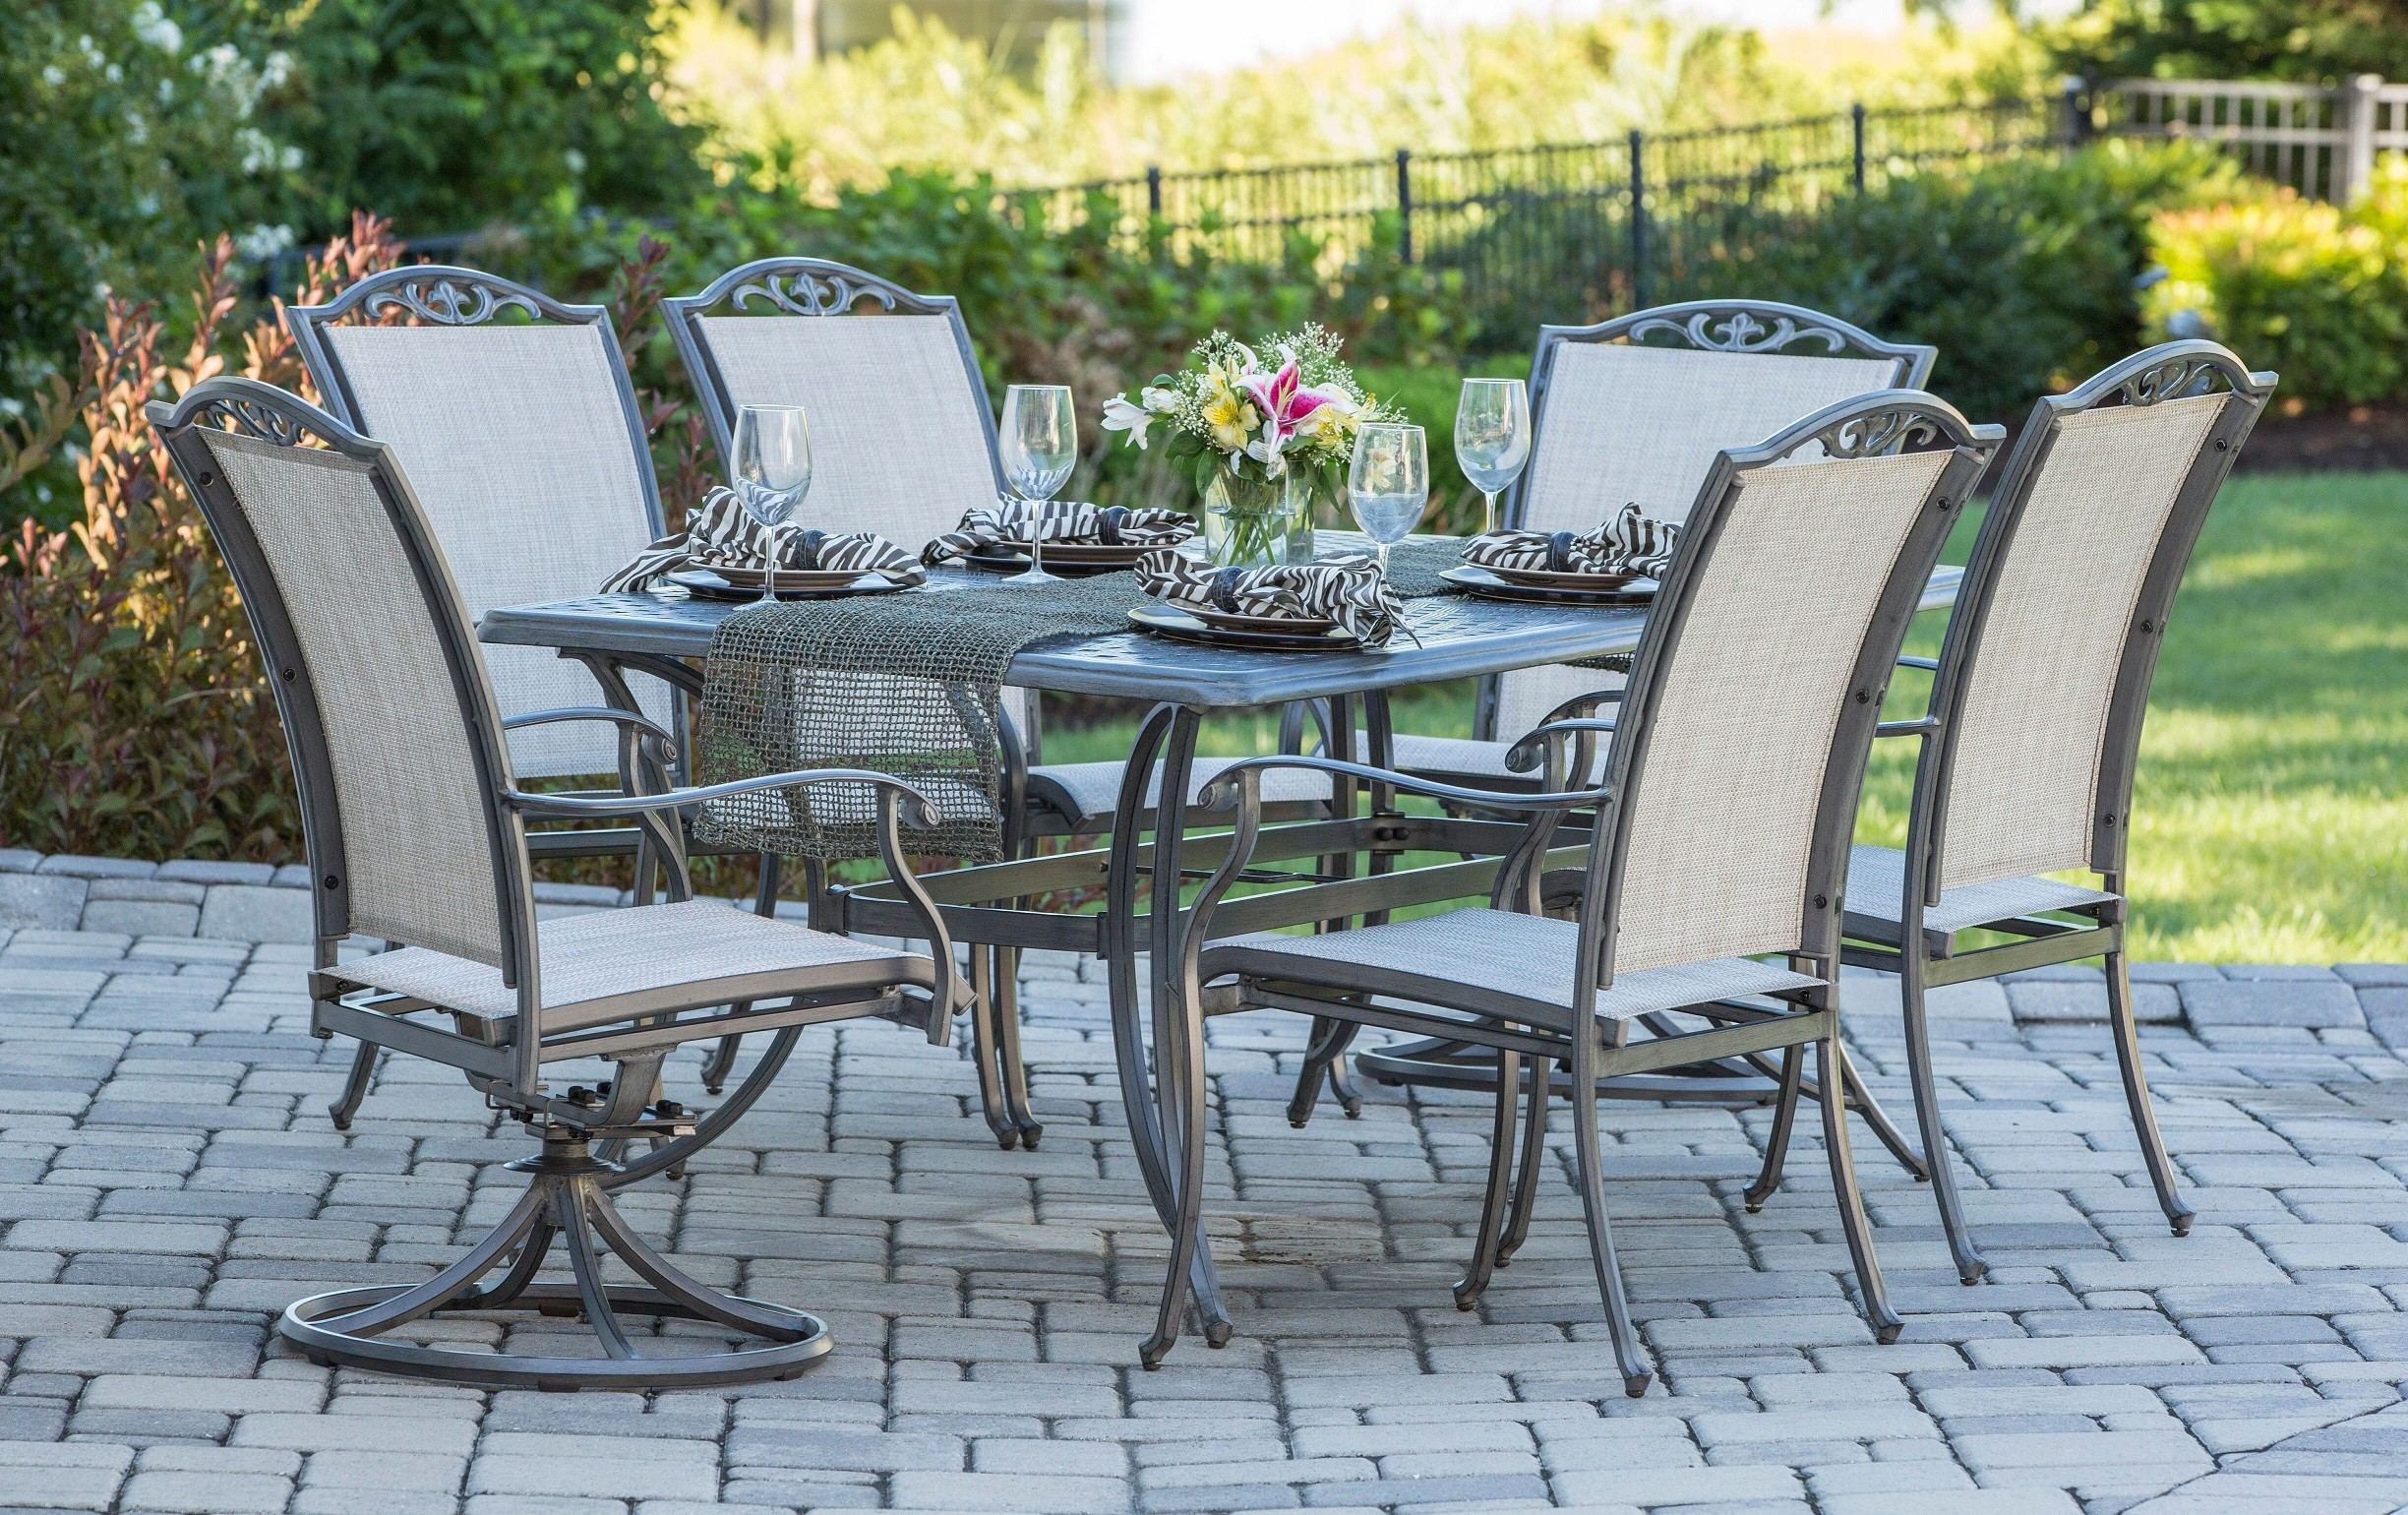 Melbourne Sling Outdoor dining setting.jpg